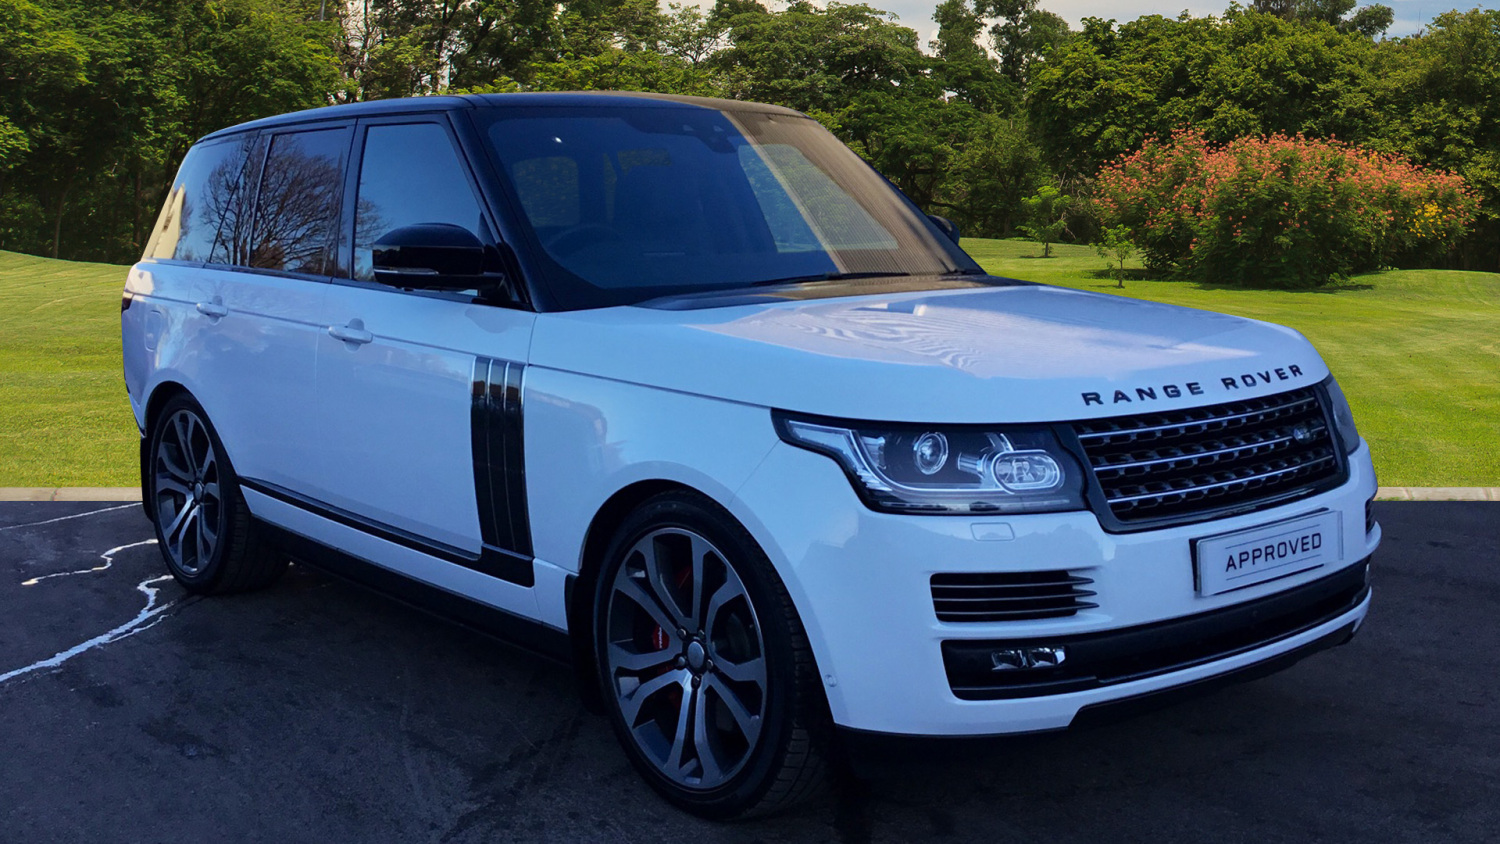 used land rover range rover 5 0 v8 s c svautobiography dynamic 4dr auto petrol estate for sale. Black Bedroom Furniture Sets. Home Design Ideas